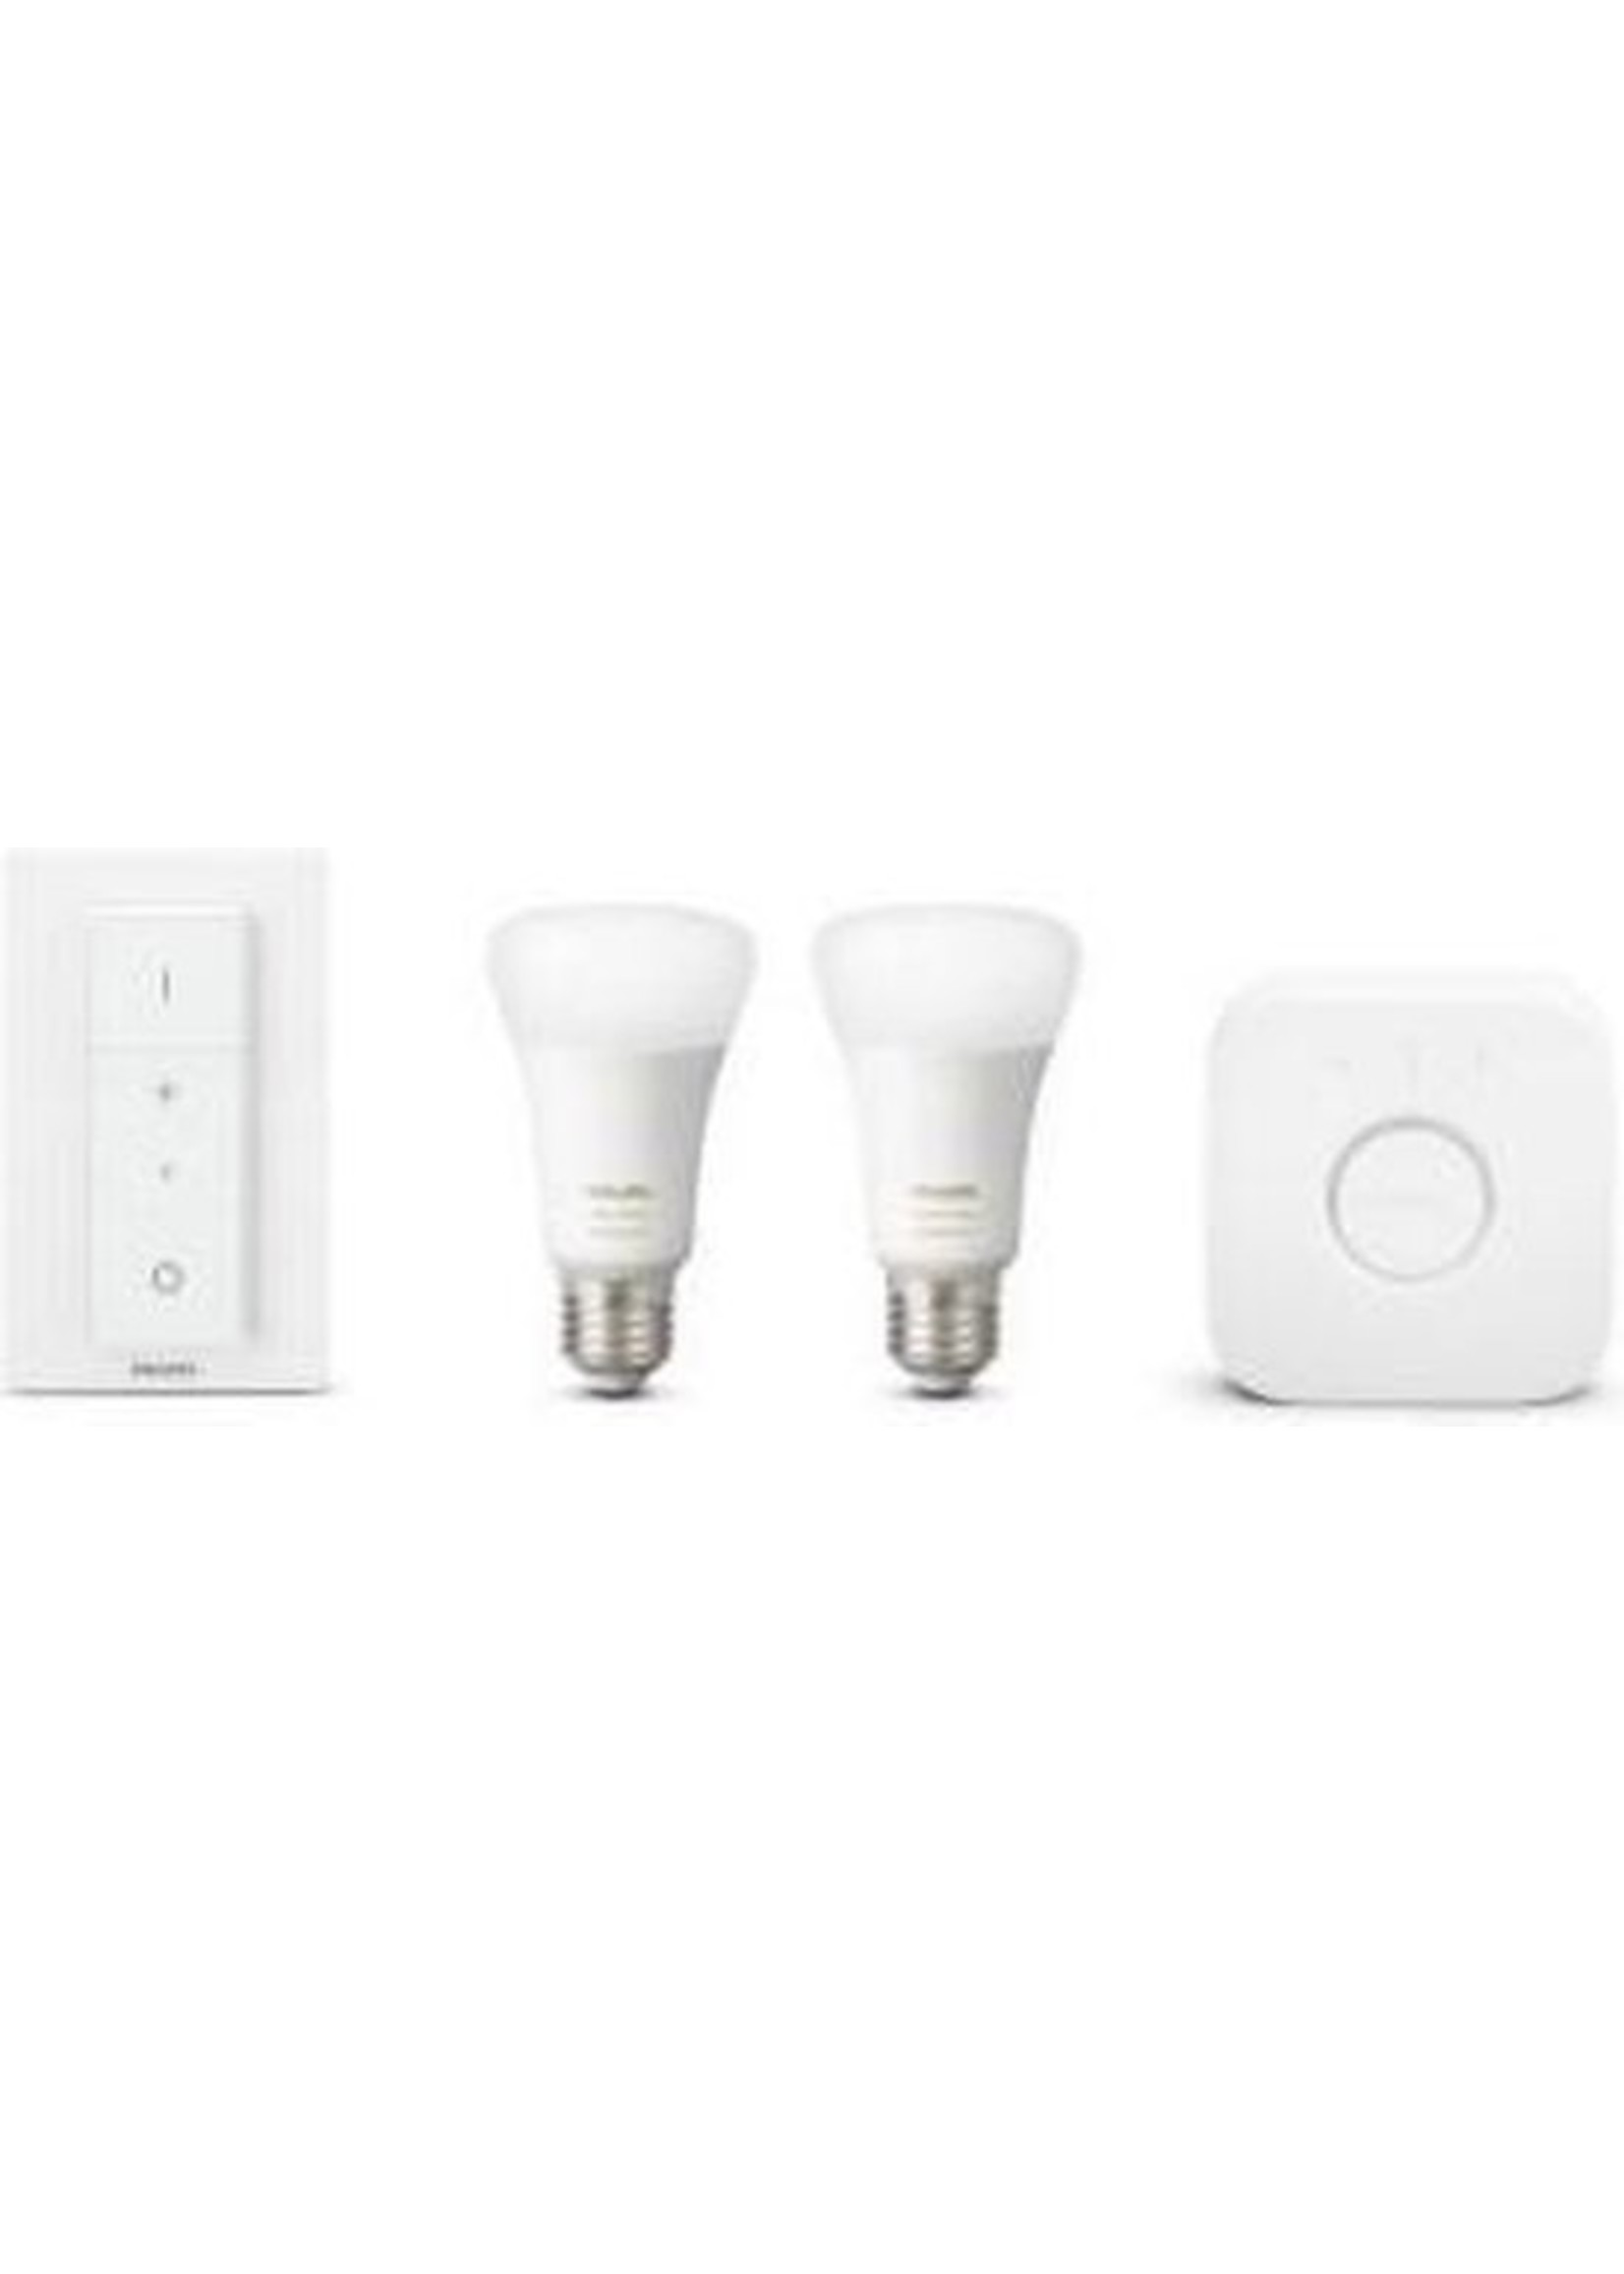 Philips Philips Hue Starterspakket E27 Lichtbron met Bridge en Dimmer Switch - White and Color Ambiance - 2 x 9W - Bluetooth